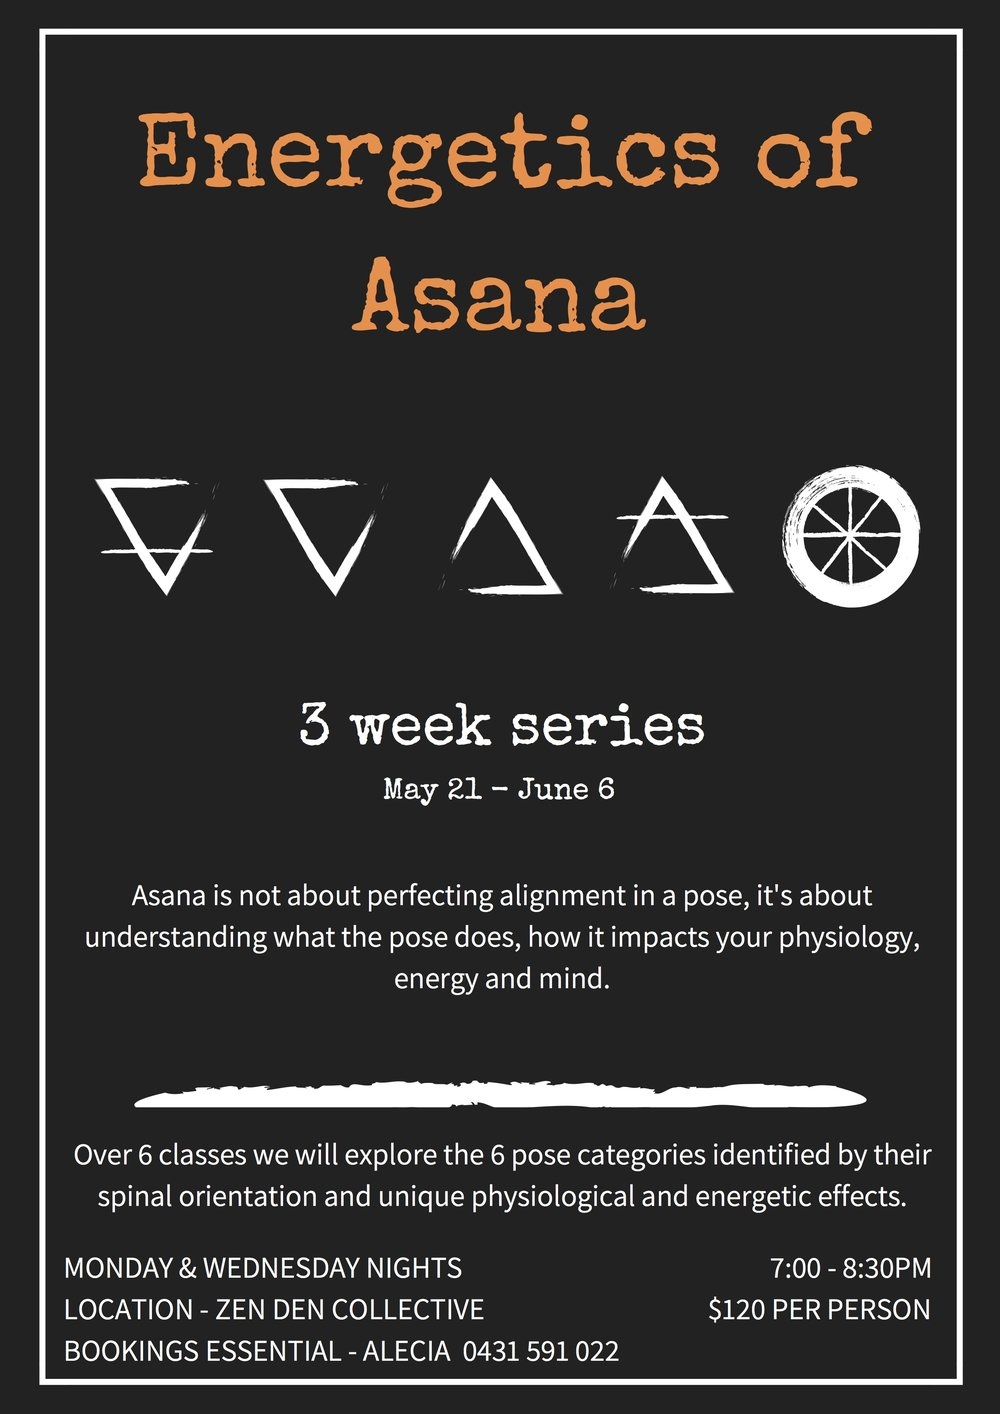 Entergetics of Asana poster.jpg